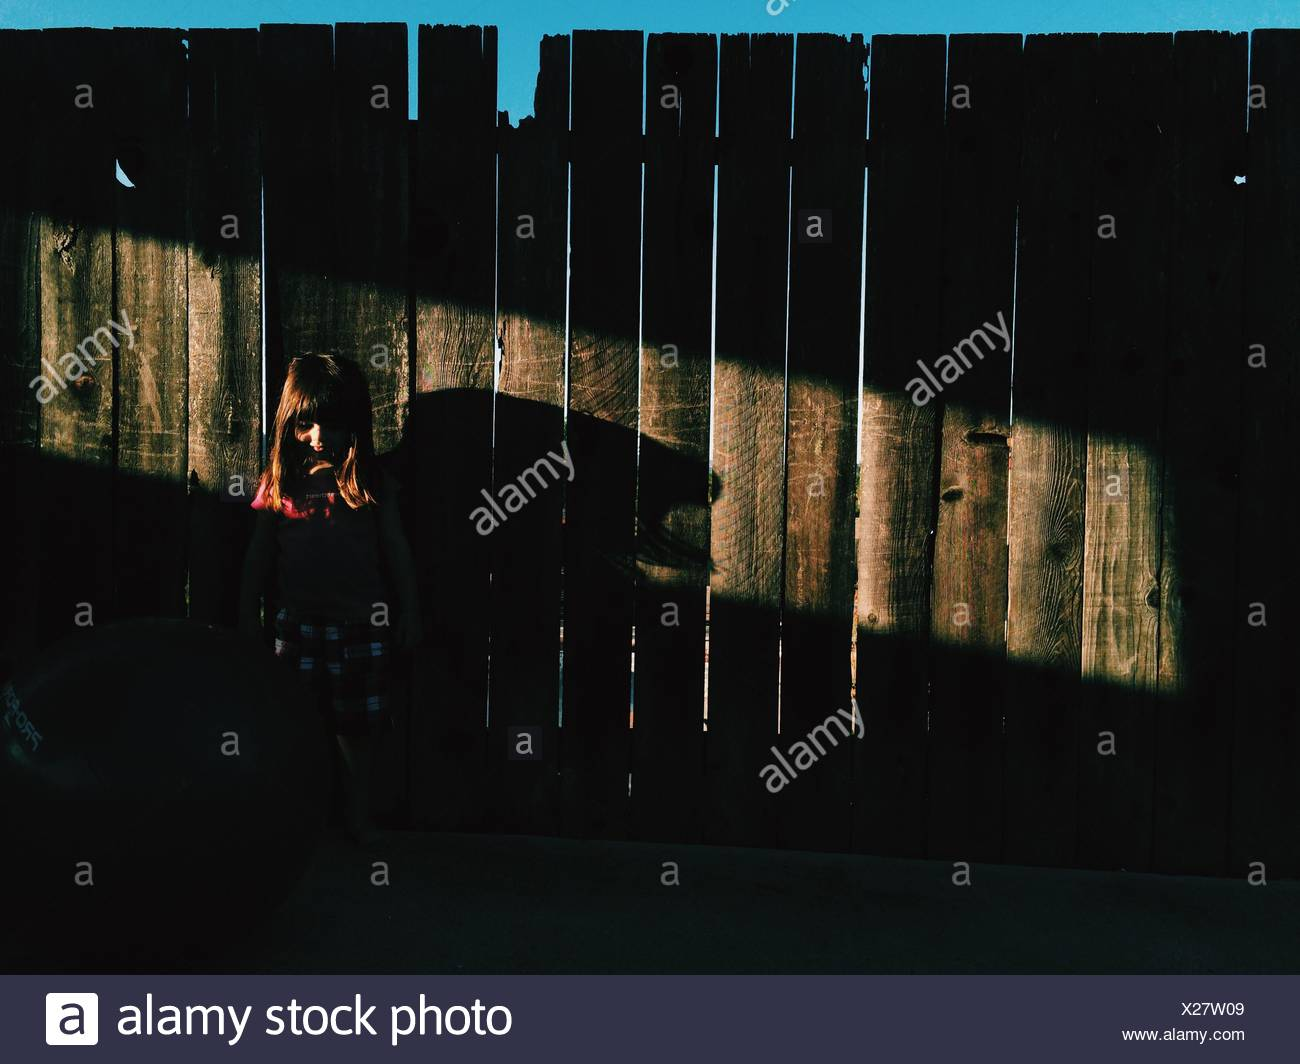 Girl Standing Against Fence Stock Photo